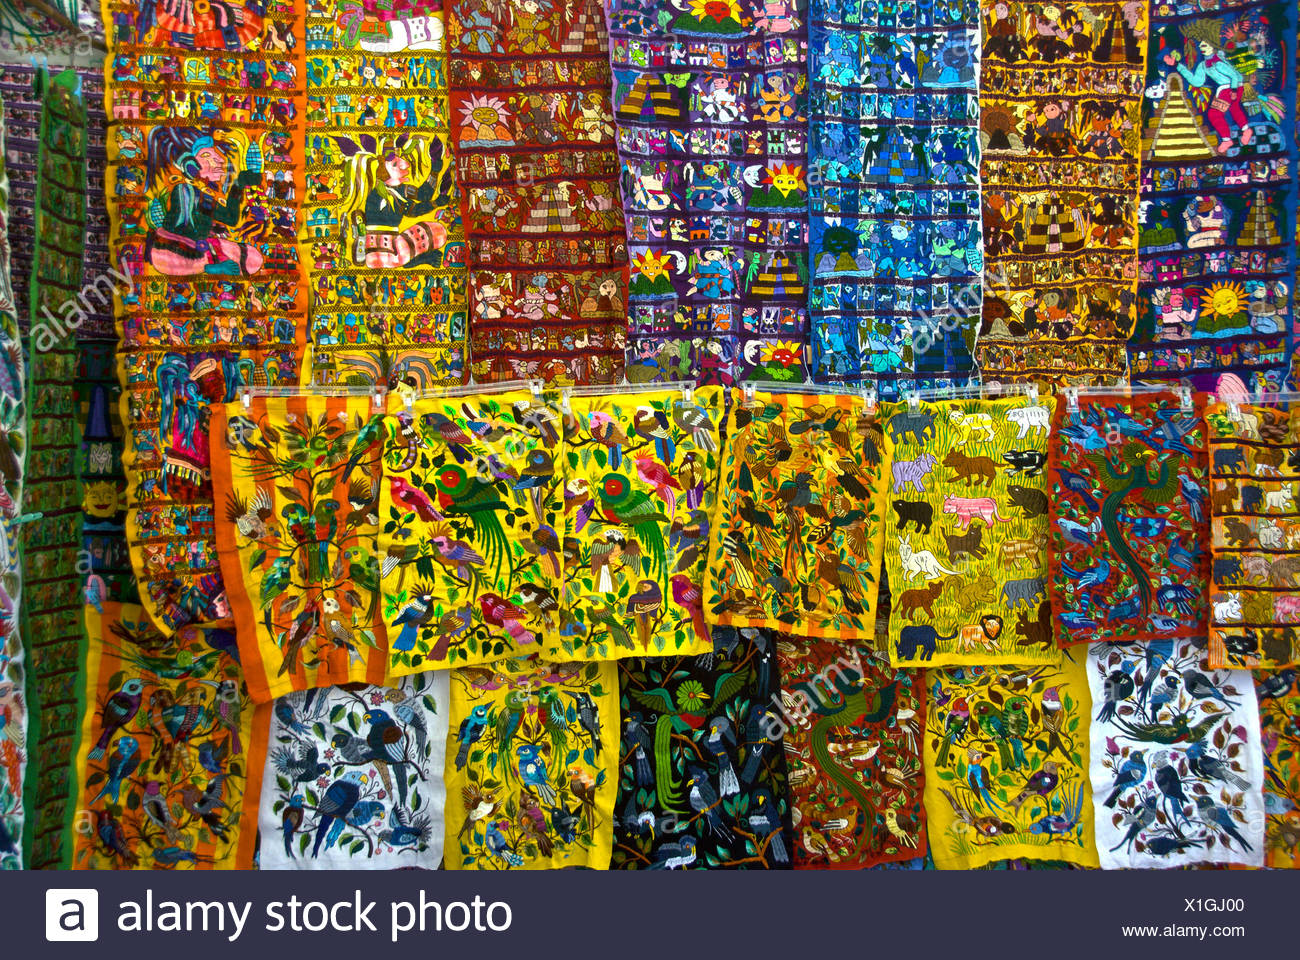 Stoff Textilien Textilien Stock Photos And Textilien Stock Images Alamy